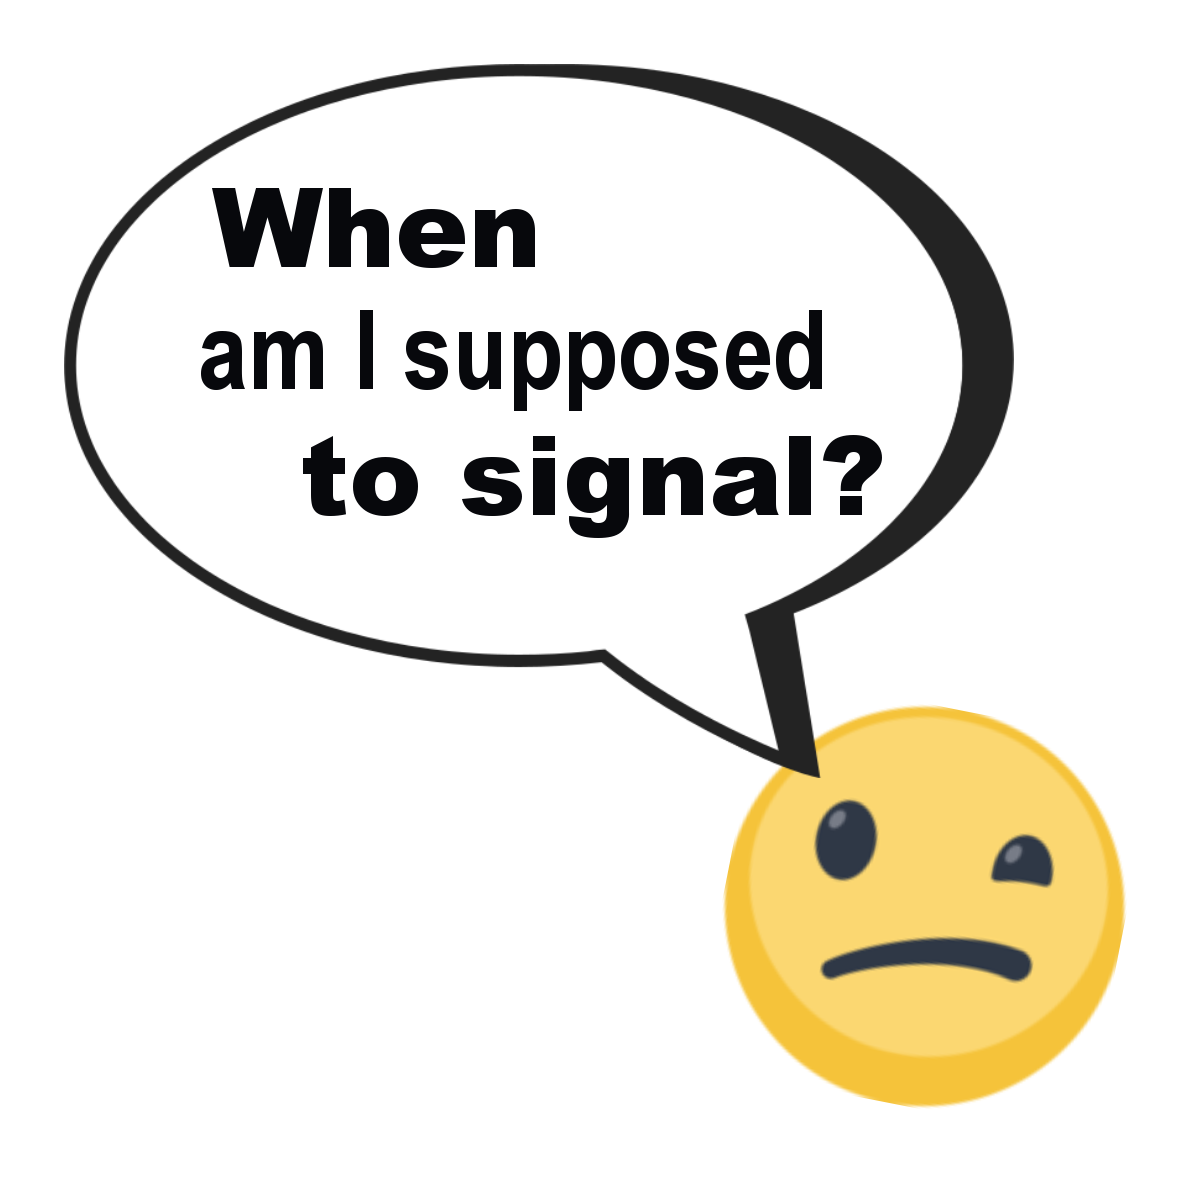 When am I supposed to signal?